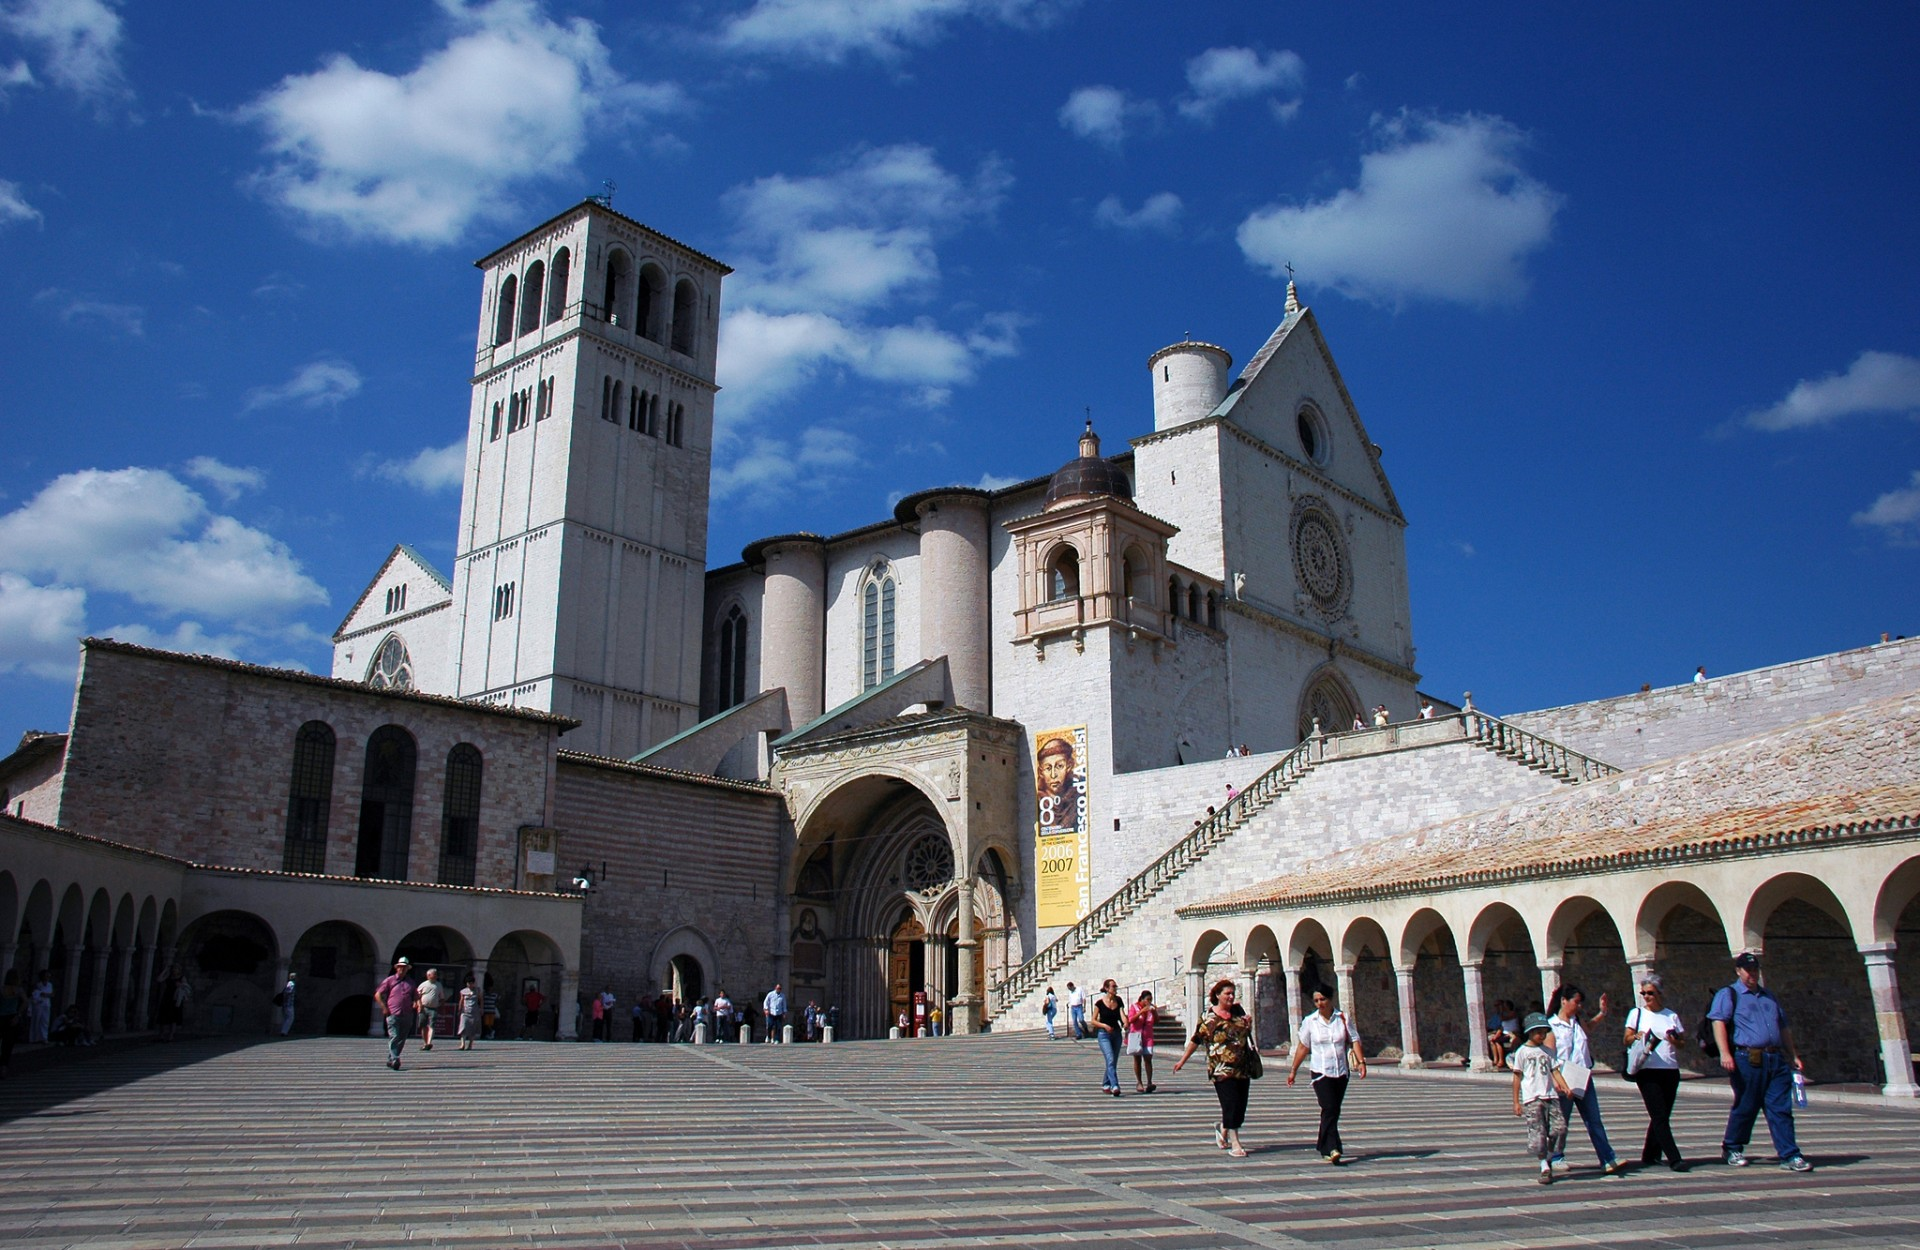 Assisi and Spello following the footsteps of St. Francis